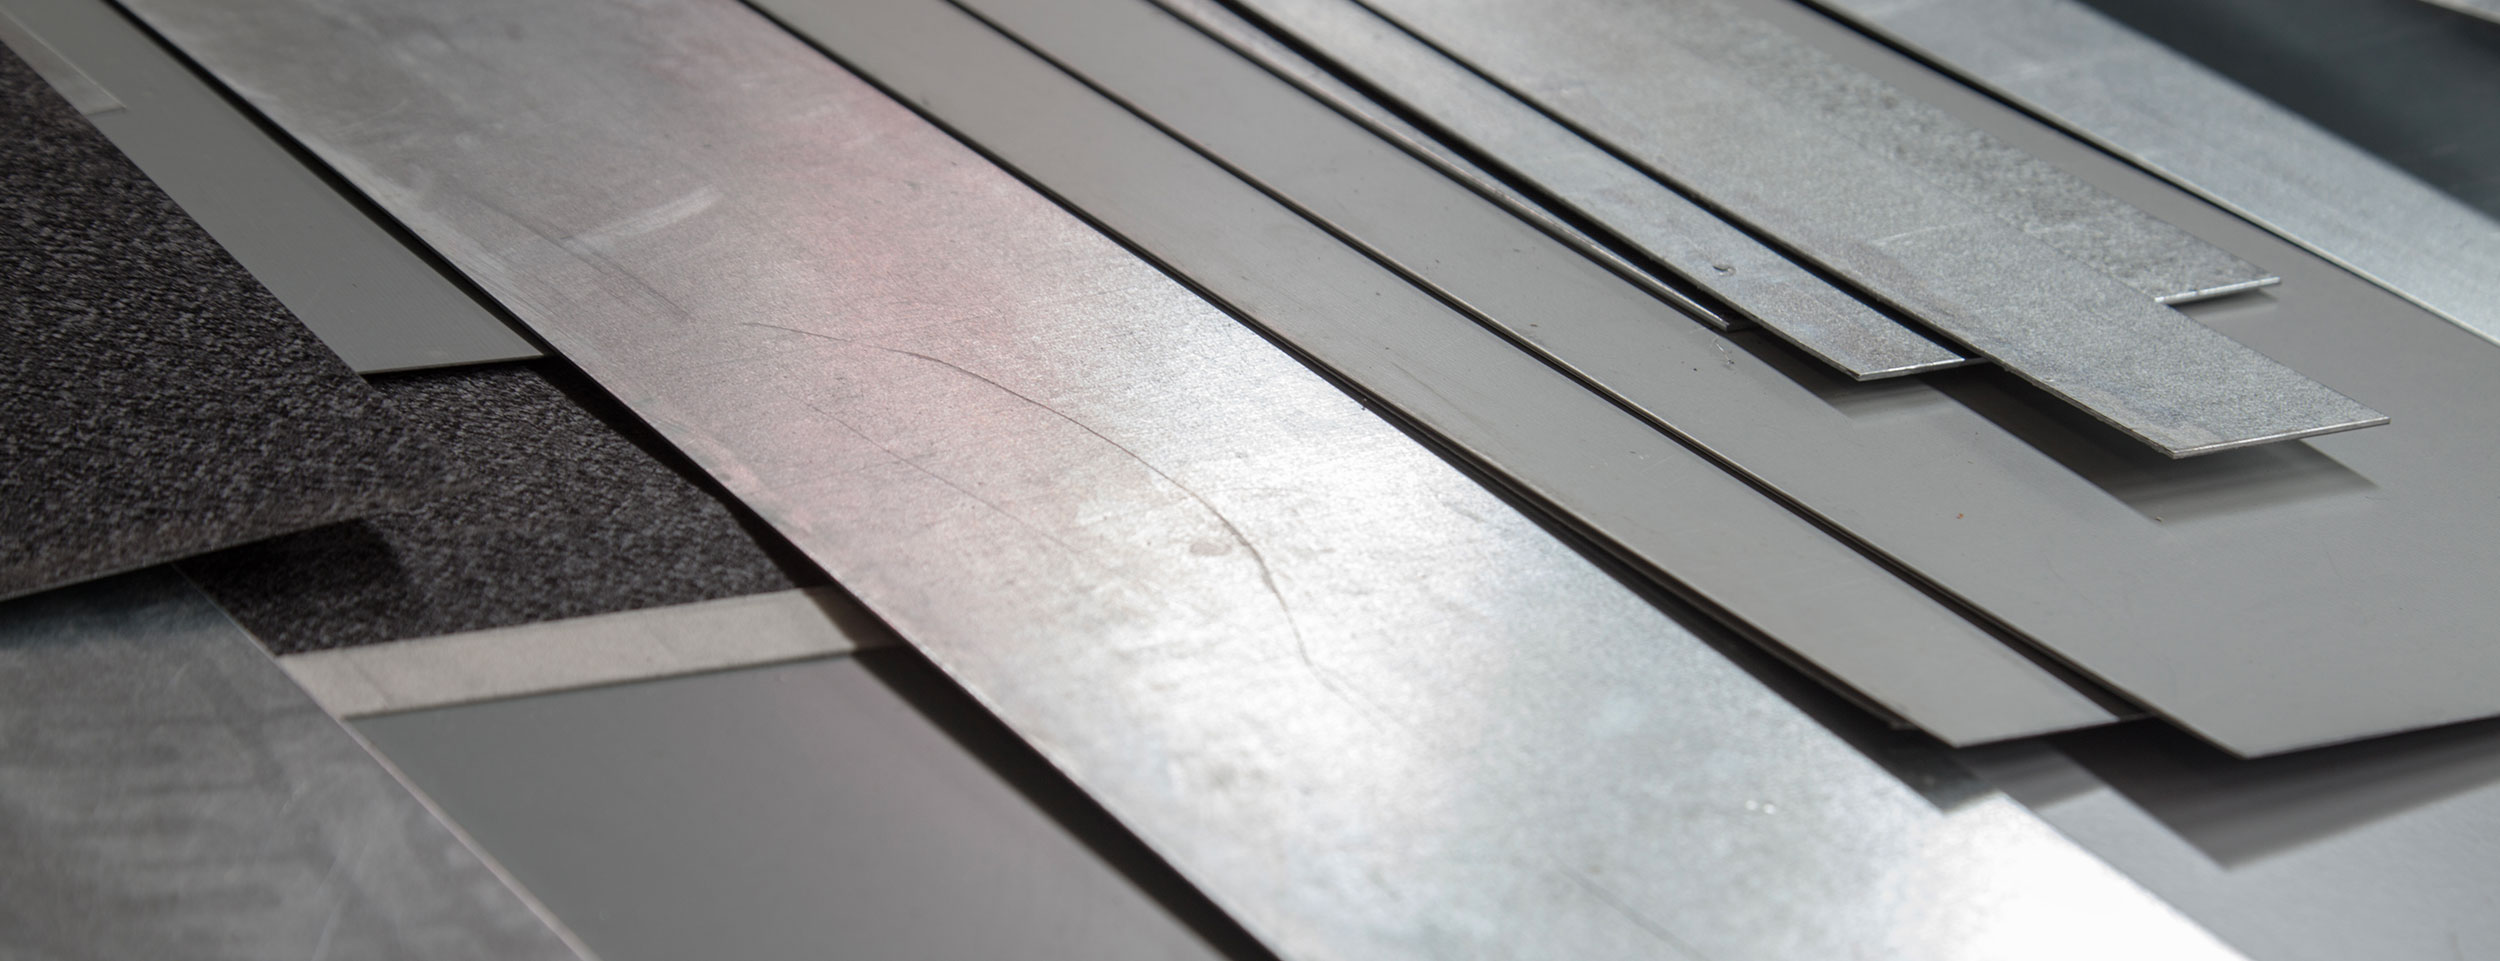 Acquisition of Bunting Sheet Metal Limited